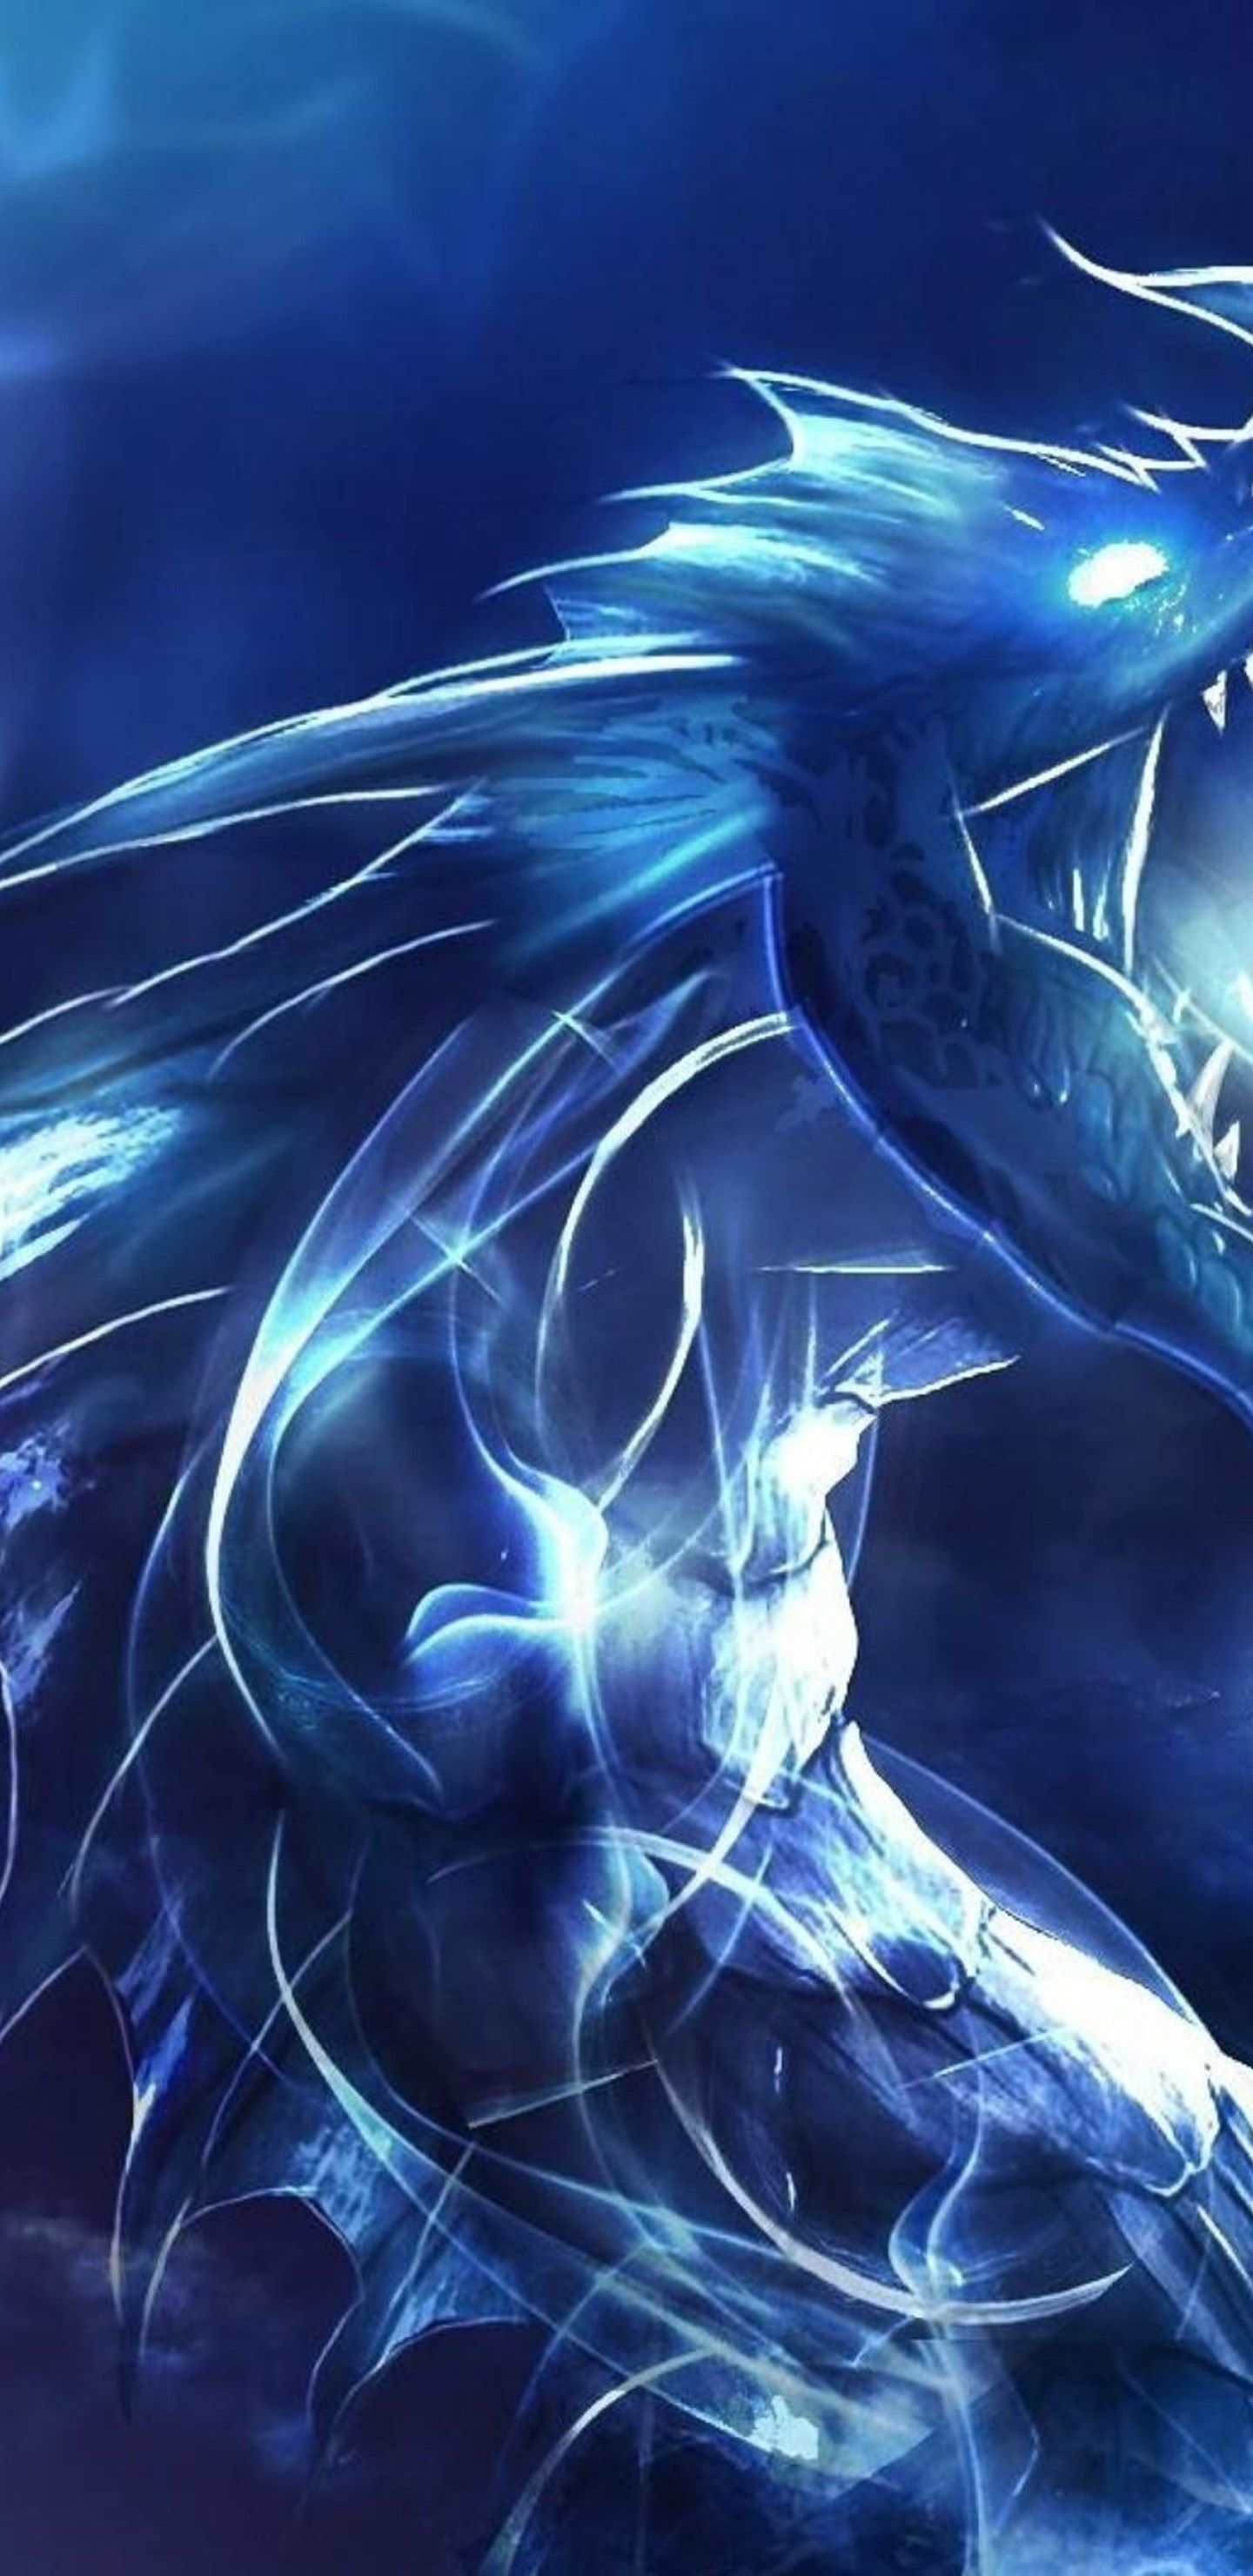 Blue Dragon Samsung Galaxy S8 S8 Note 8 Qhd Hd 4k 1440x2960 Download Hd Wallpaper Wallpapertip